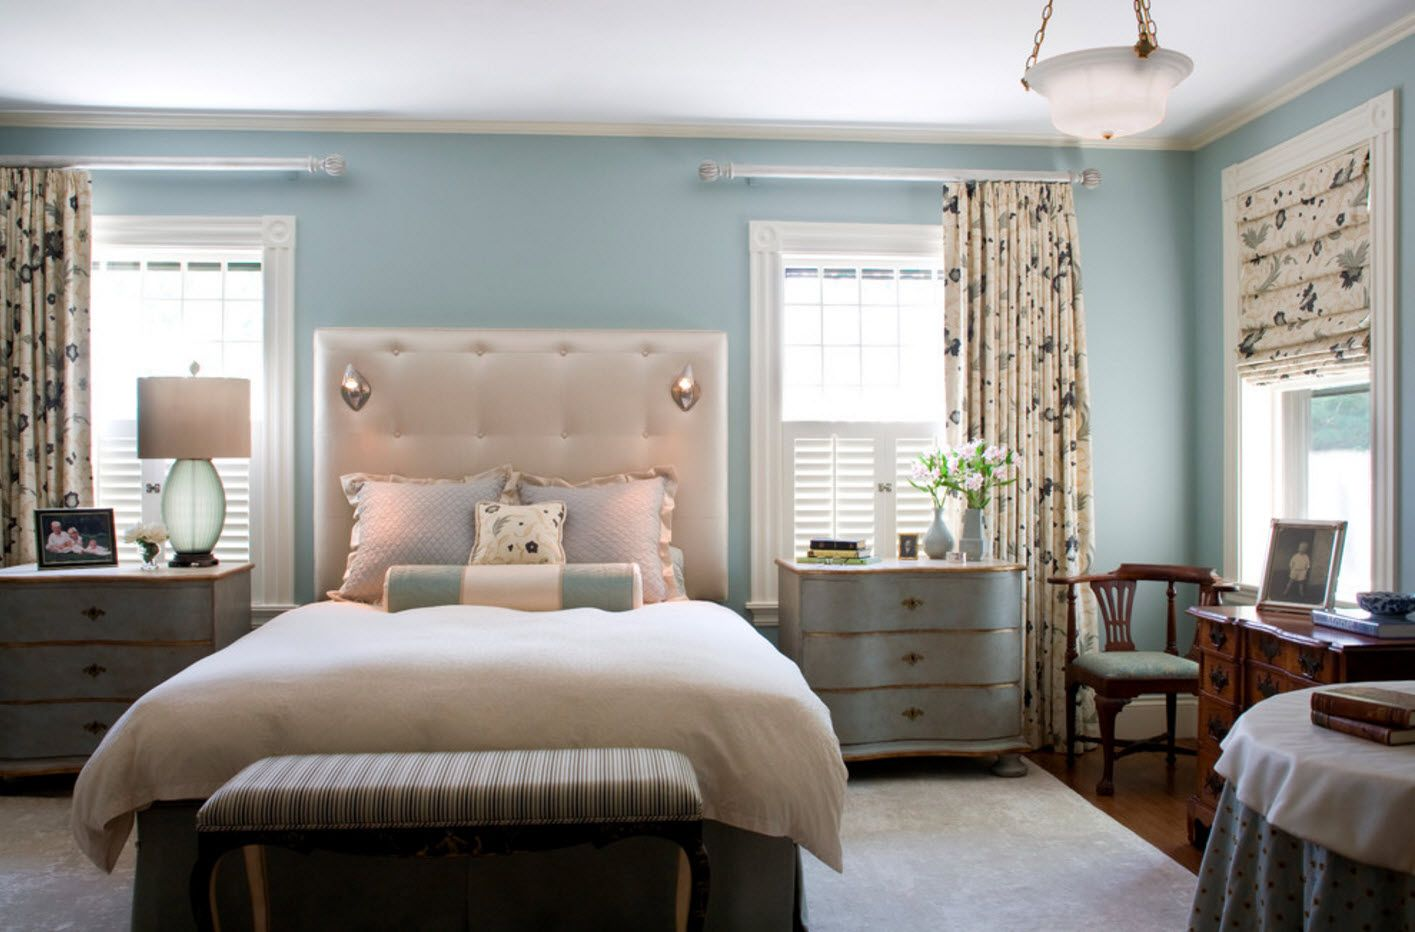 Bedroom Drapes 2017. Design, Forms, Real Examples with Photos. Turquoise color theme for the small ascetic classic styled room